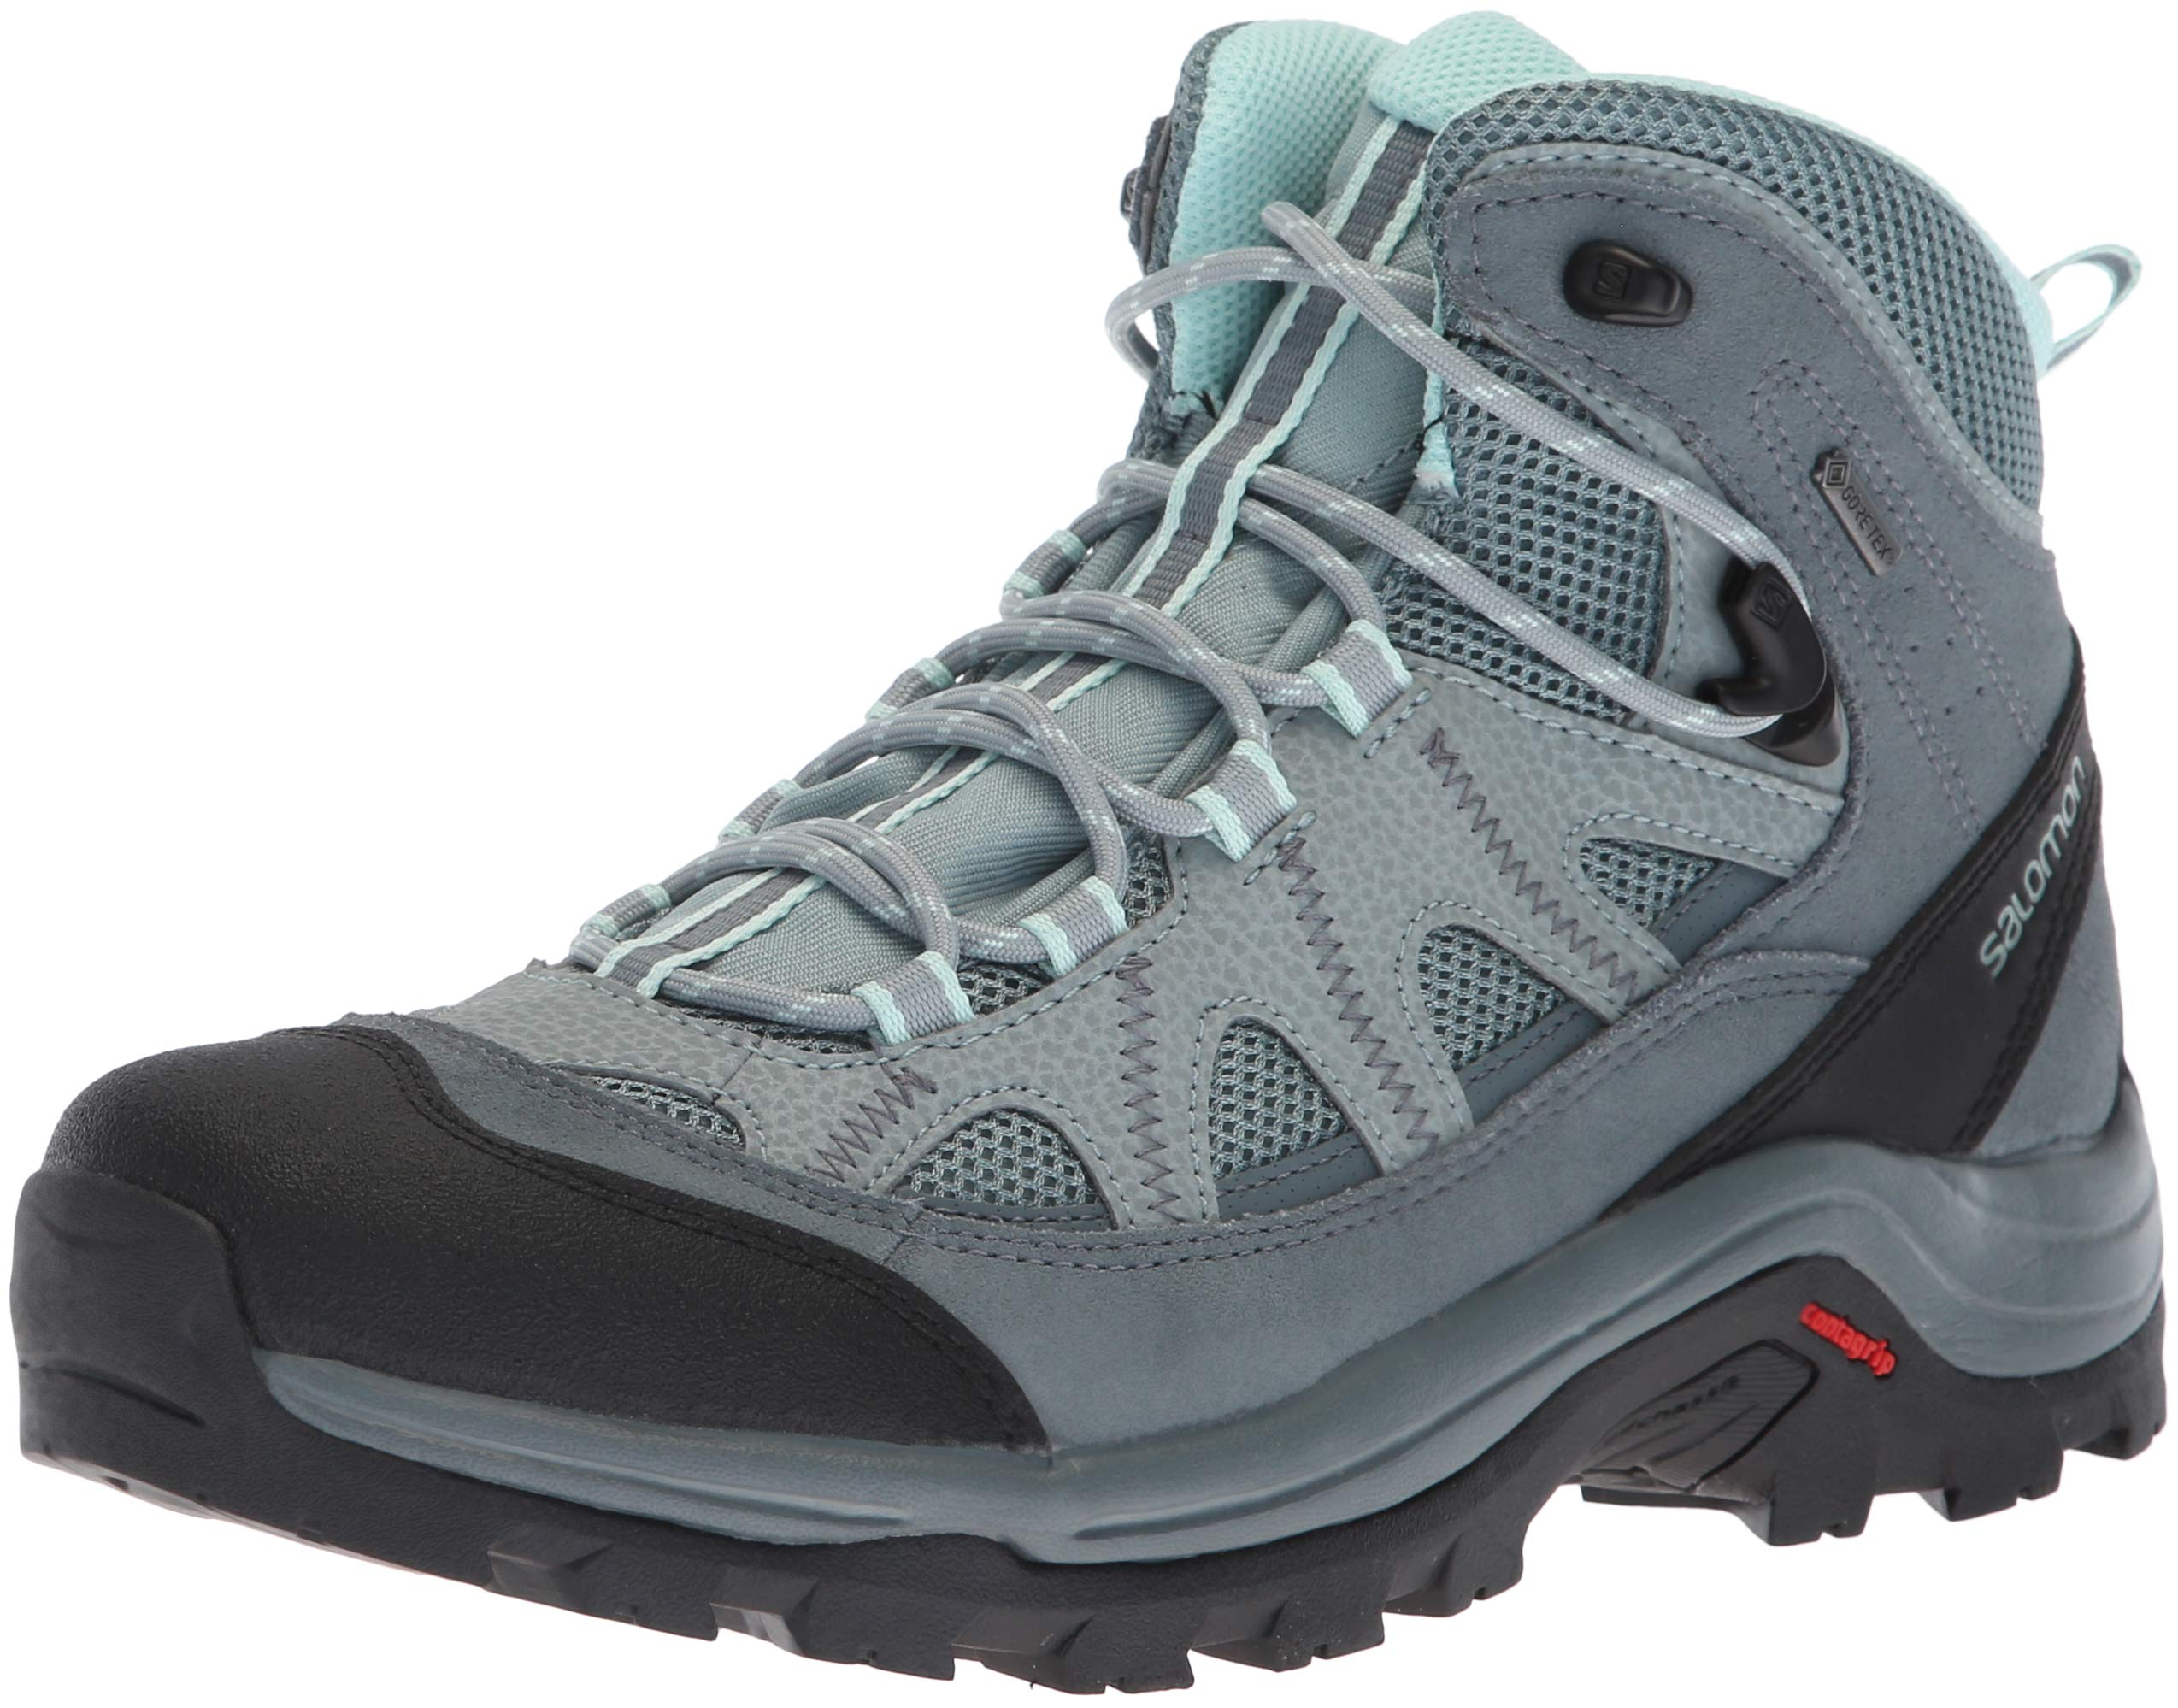 Salomon Women's Authentic LTR GTX W Backpacking Boot, Lead/Stormy Weather/Eggshell Blue, 8.5 B US